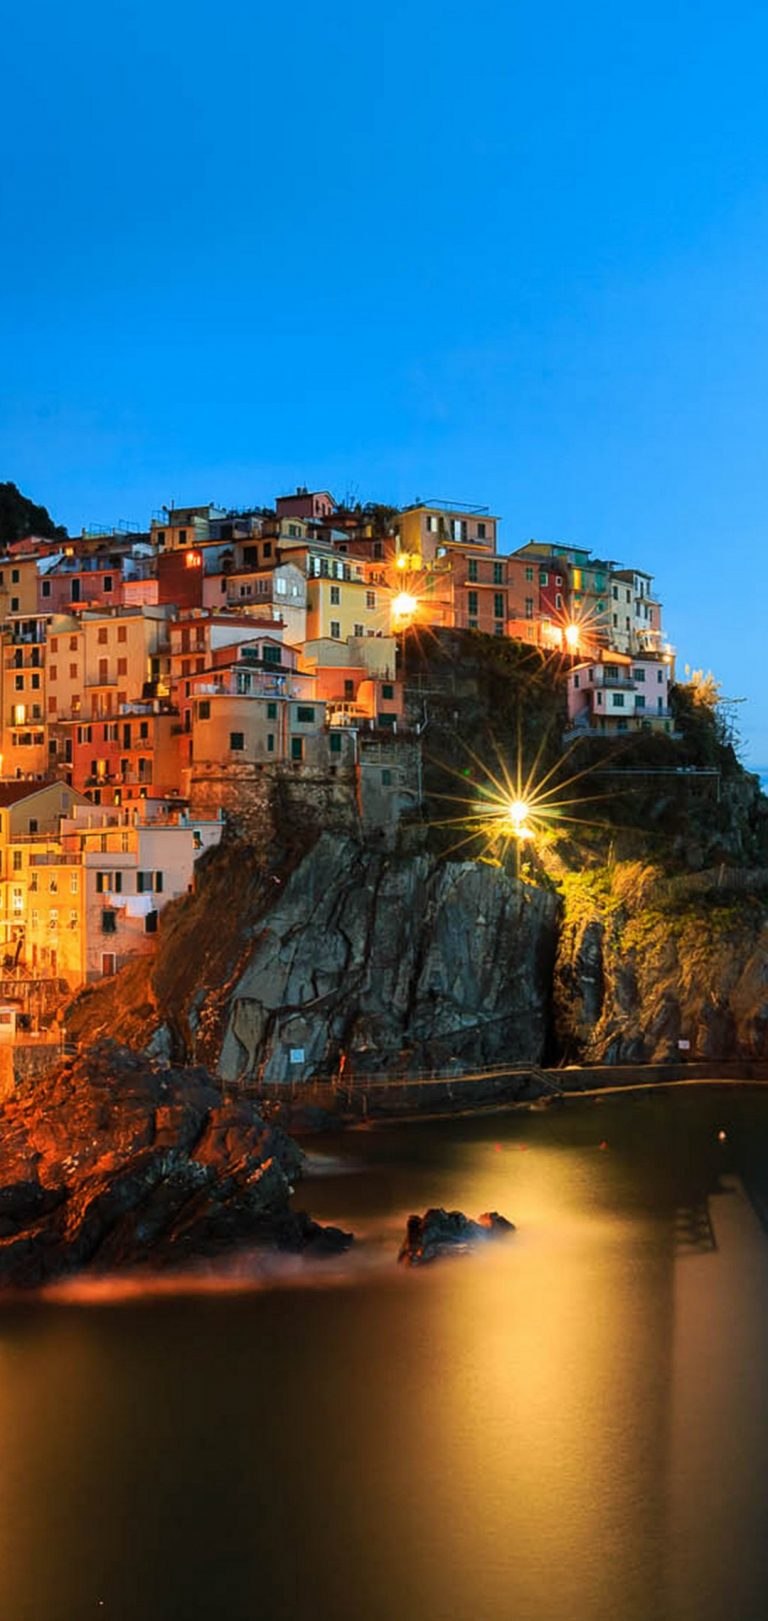 Manarola Night Wallpaper 1080x2280 768x1621